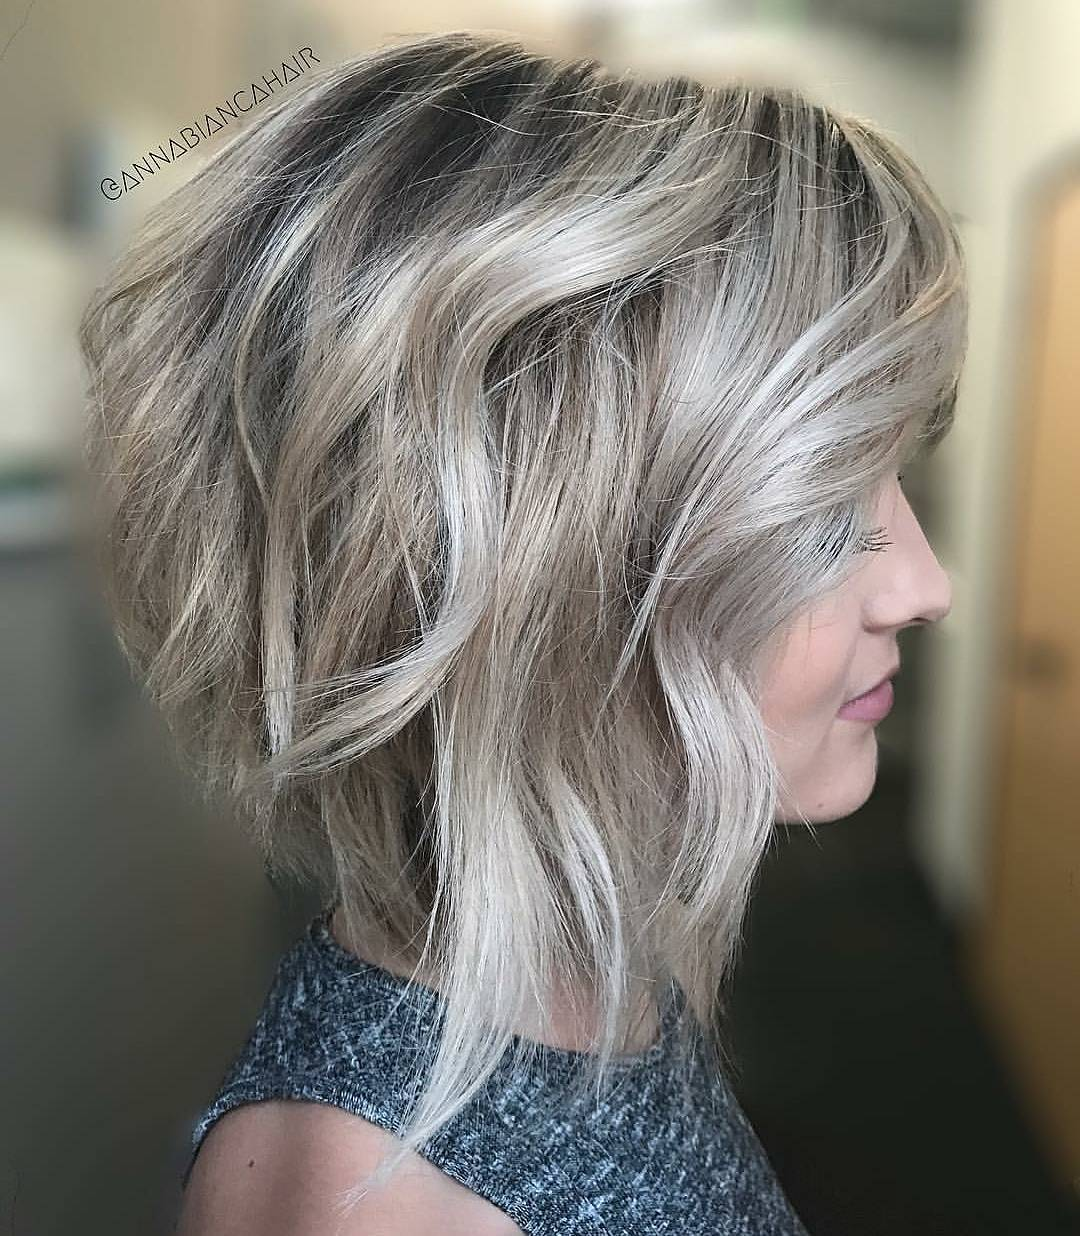 10 Messy Hairstyles for Short Hair - Quick Chic! Women ...